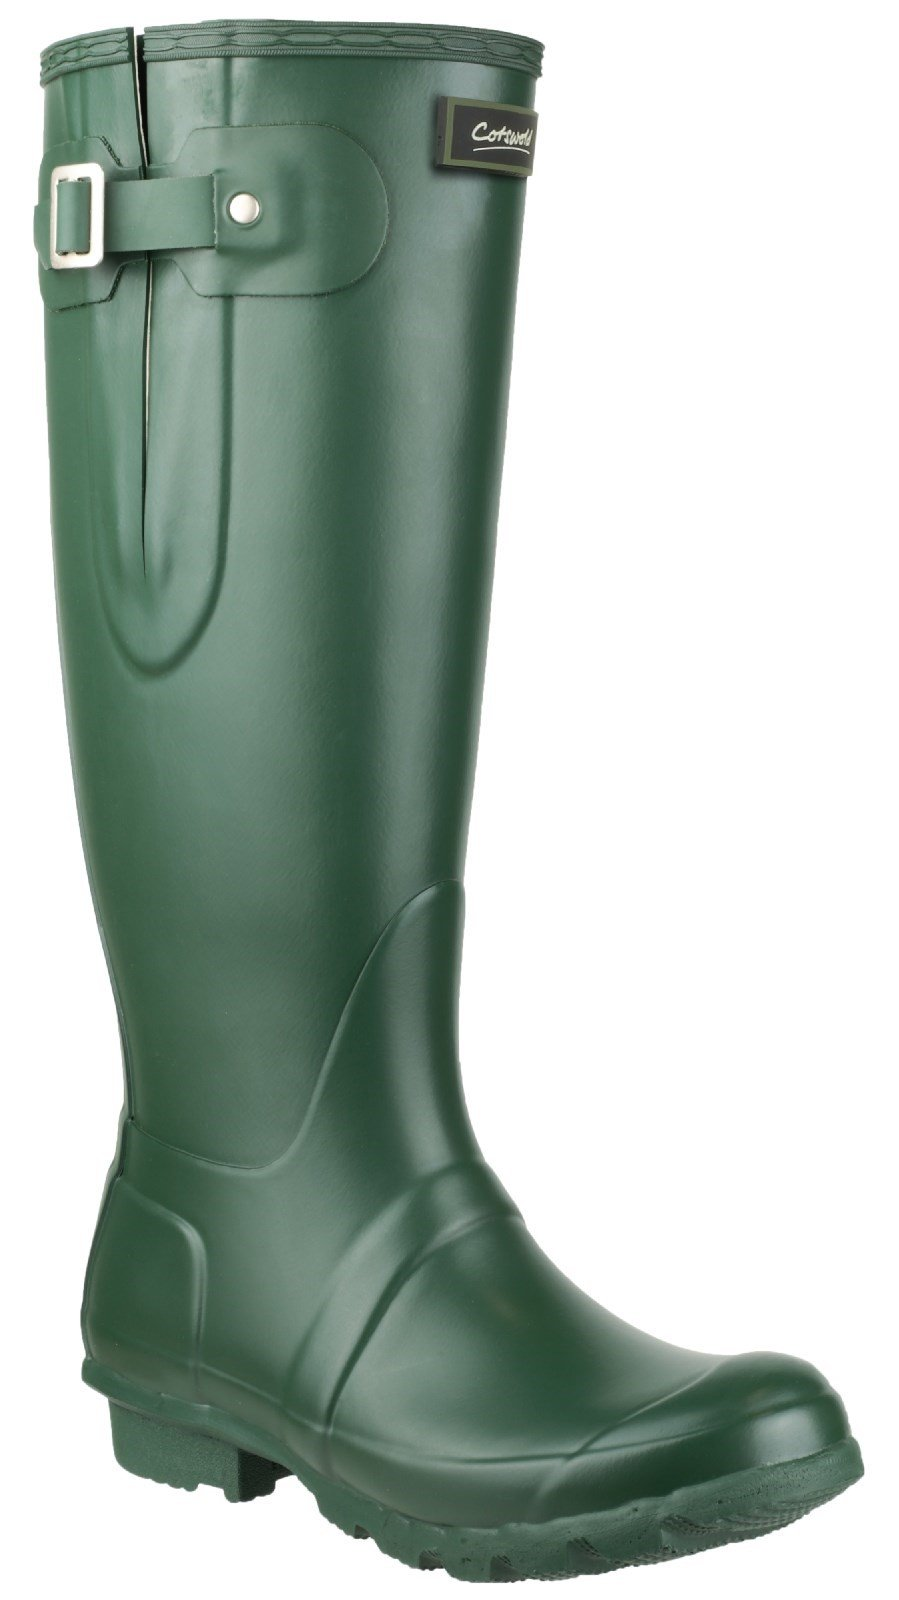 Cotswold Unisex Windsor Tall Wellington Boot Various Colours 20958 - Green 3